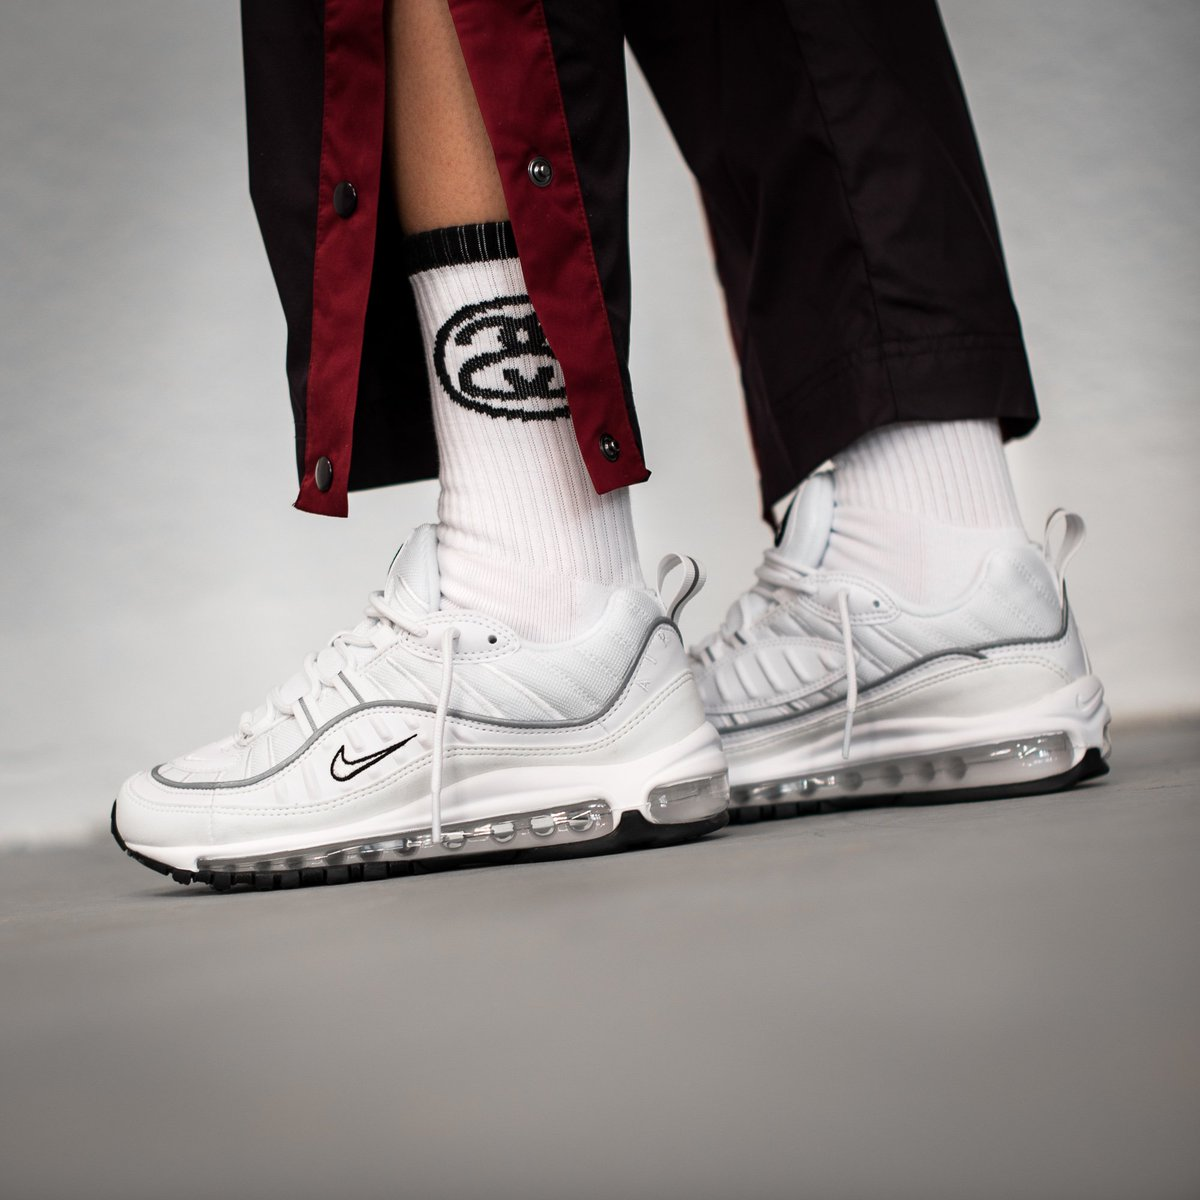 7afa3539f2 AIR MAX 98 - Ladies only! The Nike Air Max 98 in two new colorways is now  available on http://KICKZ.com and in our stores! http://kickz.cc/Wam98_en  ...